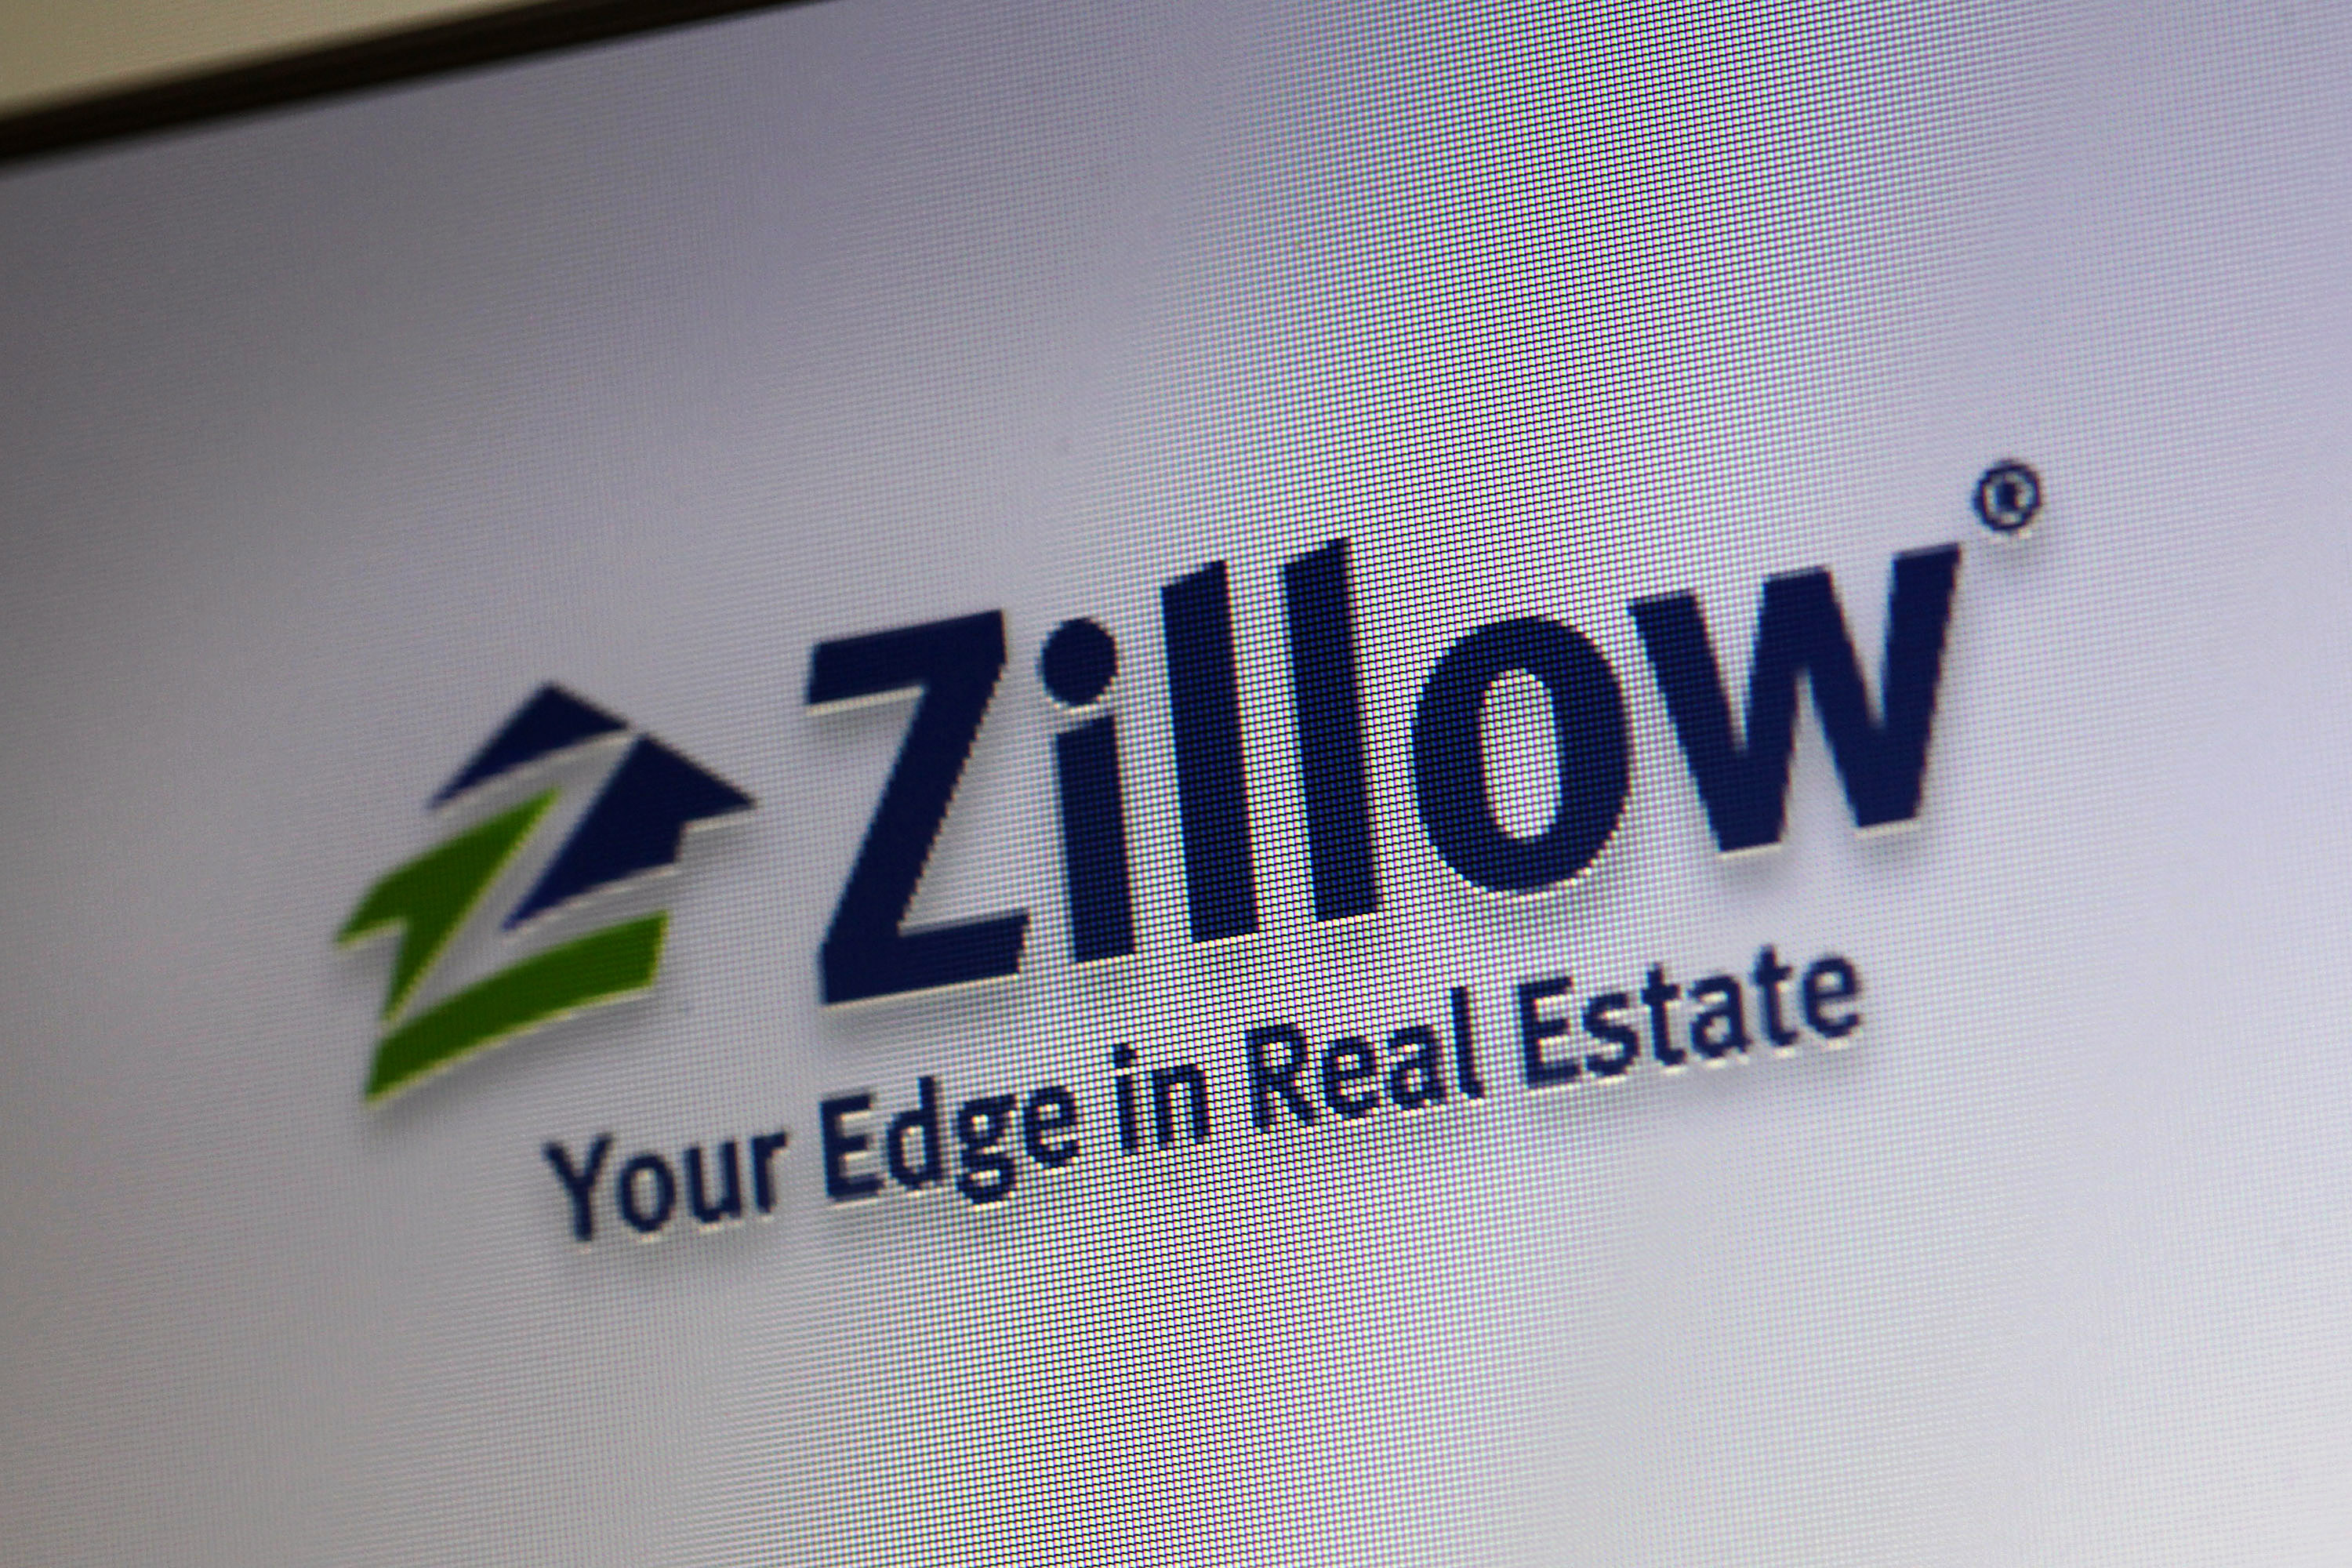 Zillow Inc. Releases Earnings Data